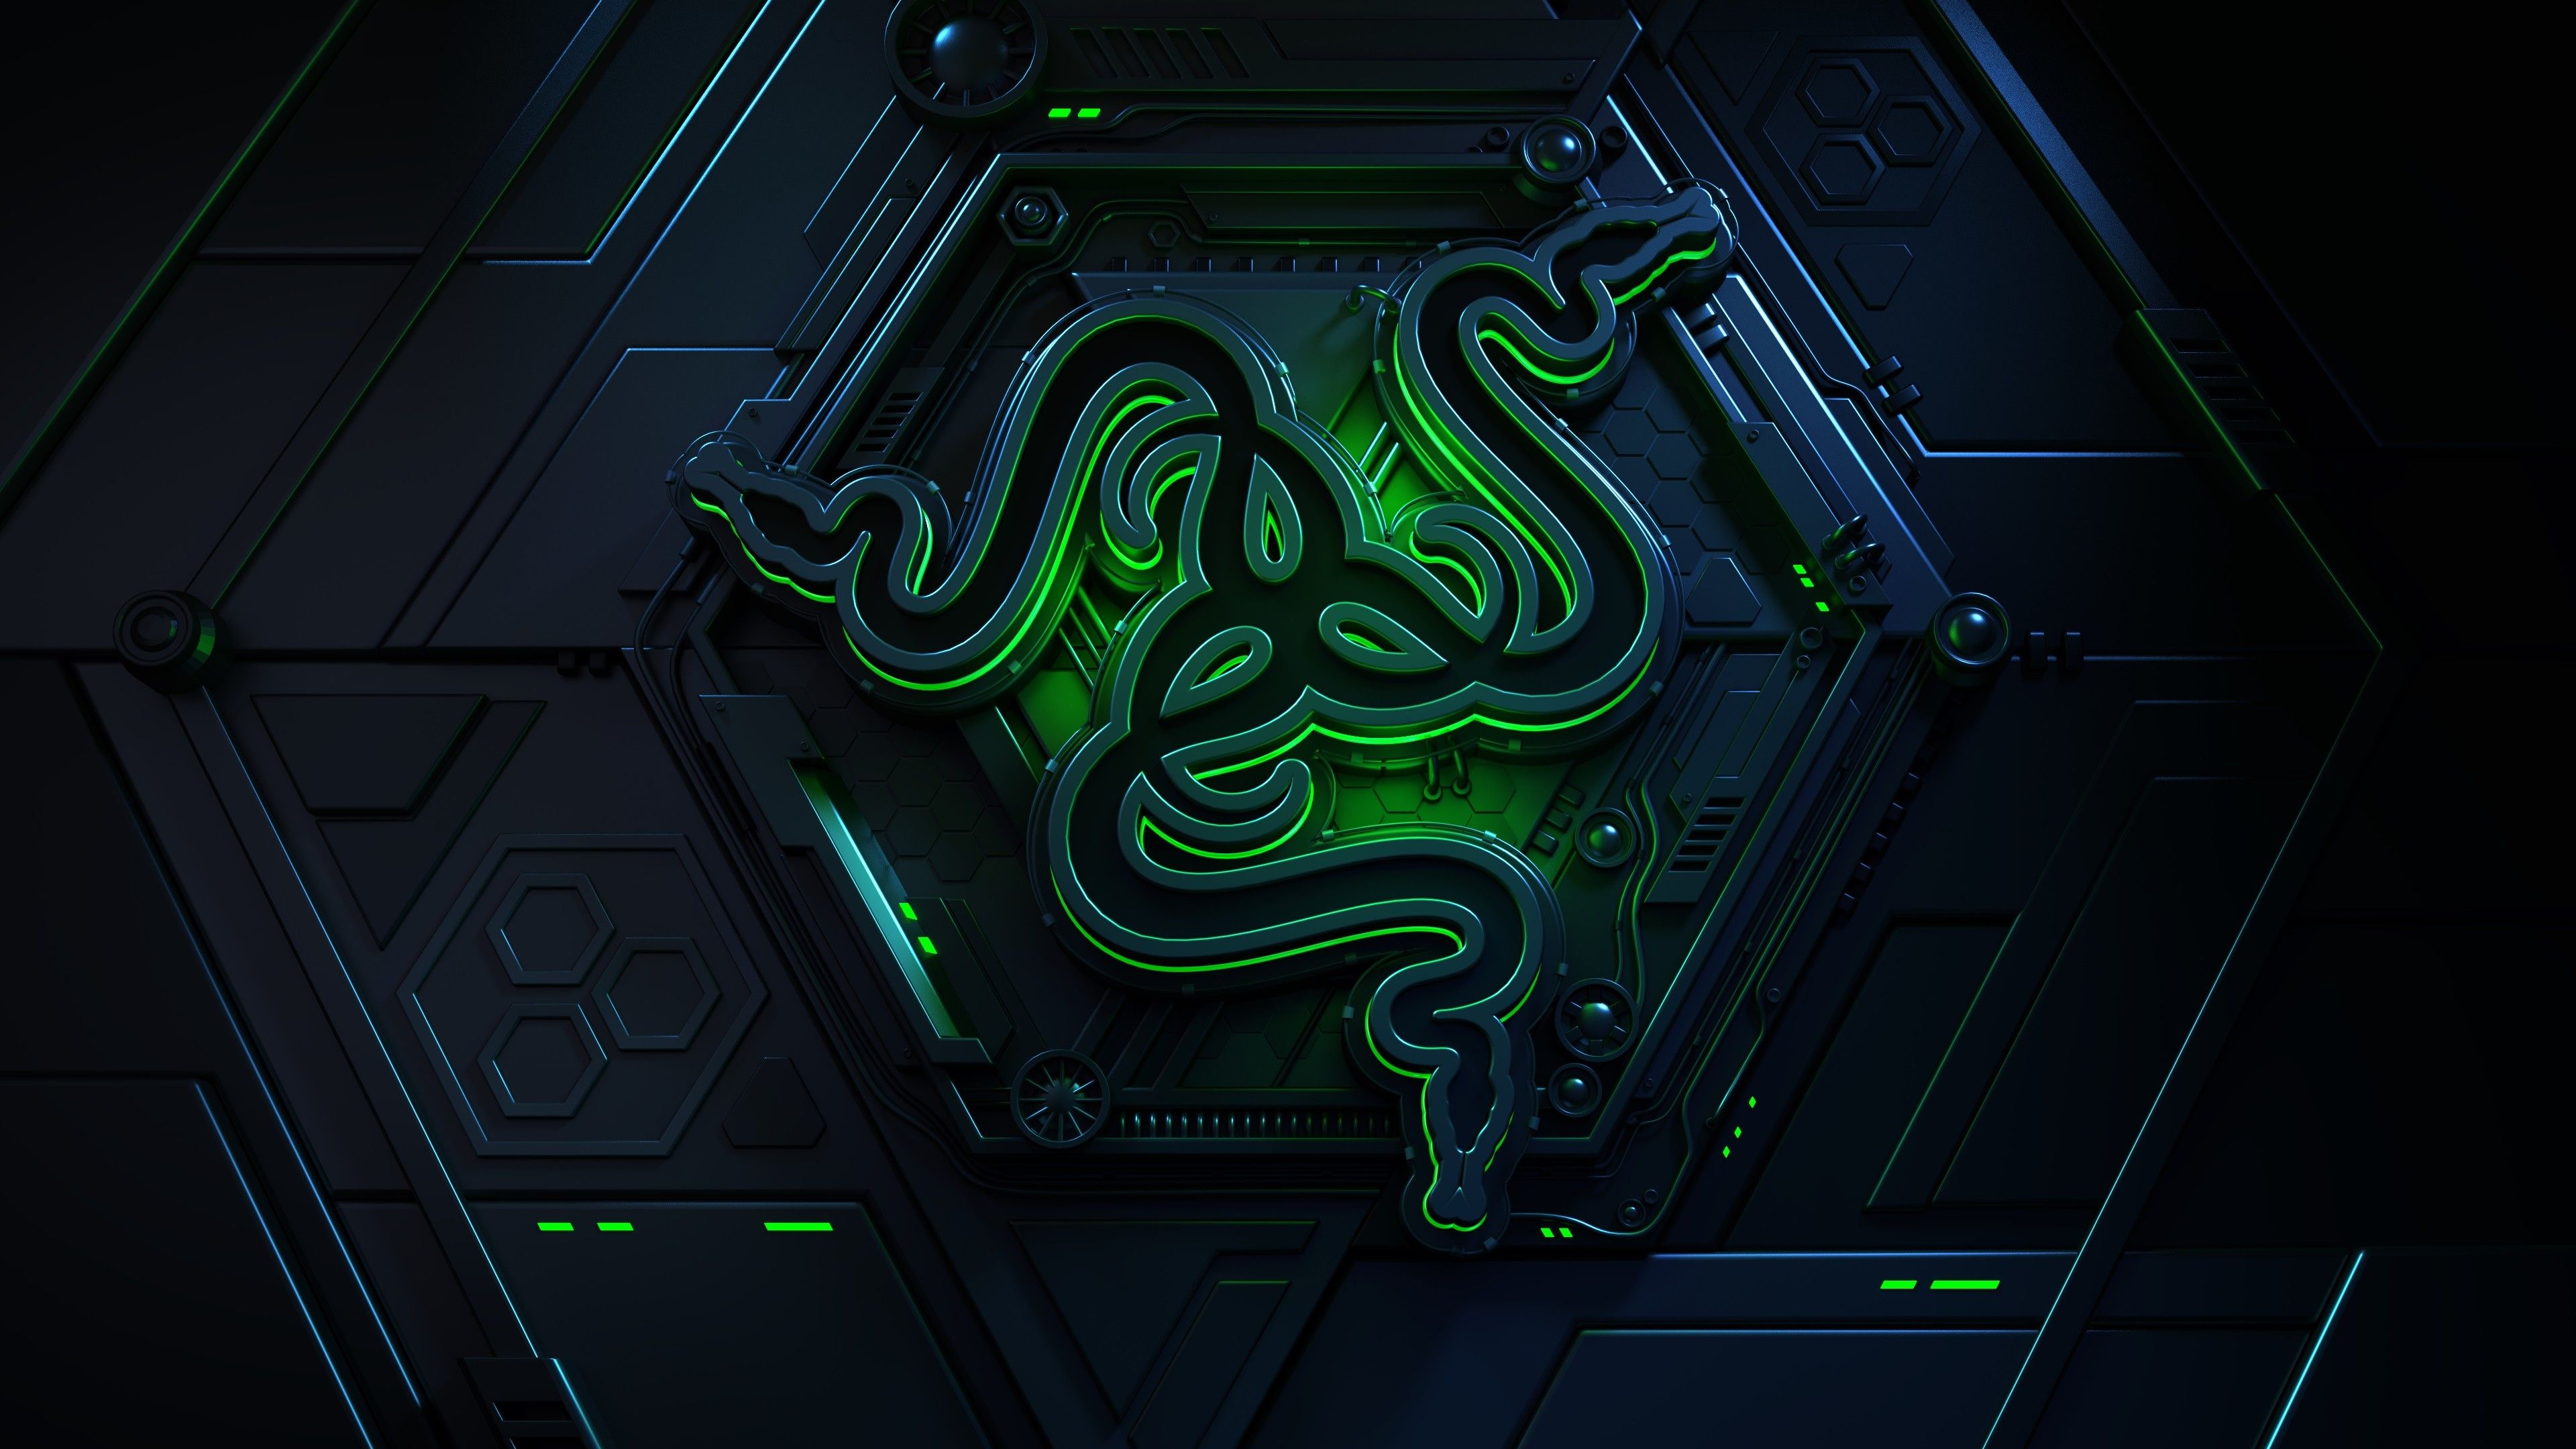 3840x2160 Razer Vault 4k Wallpaper Technology Wallpaper Neon